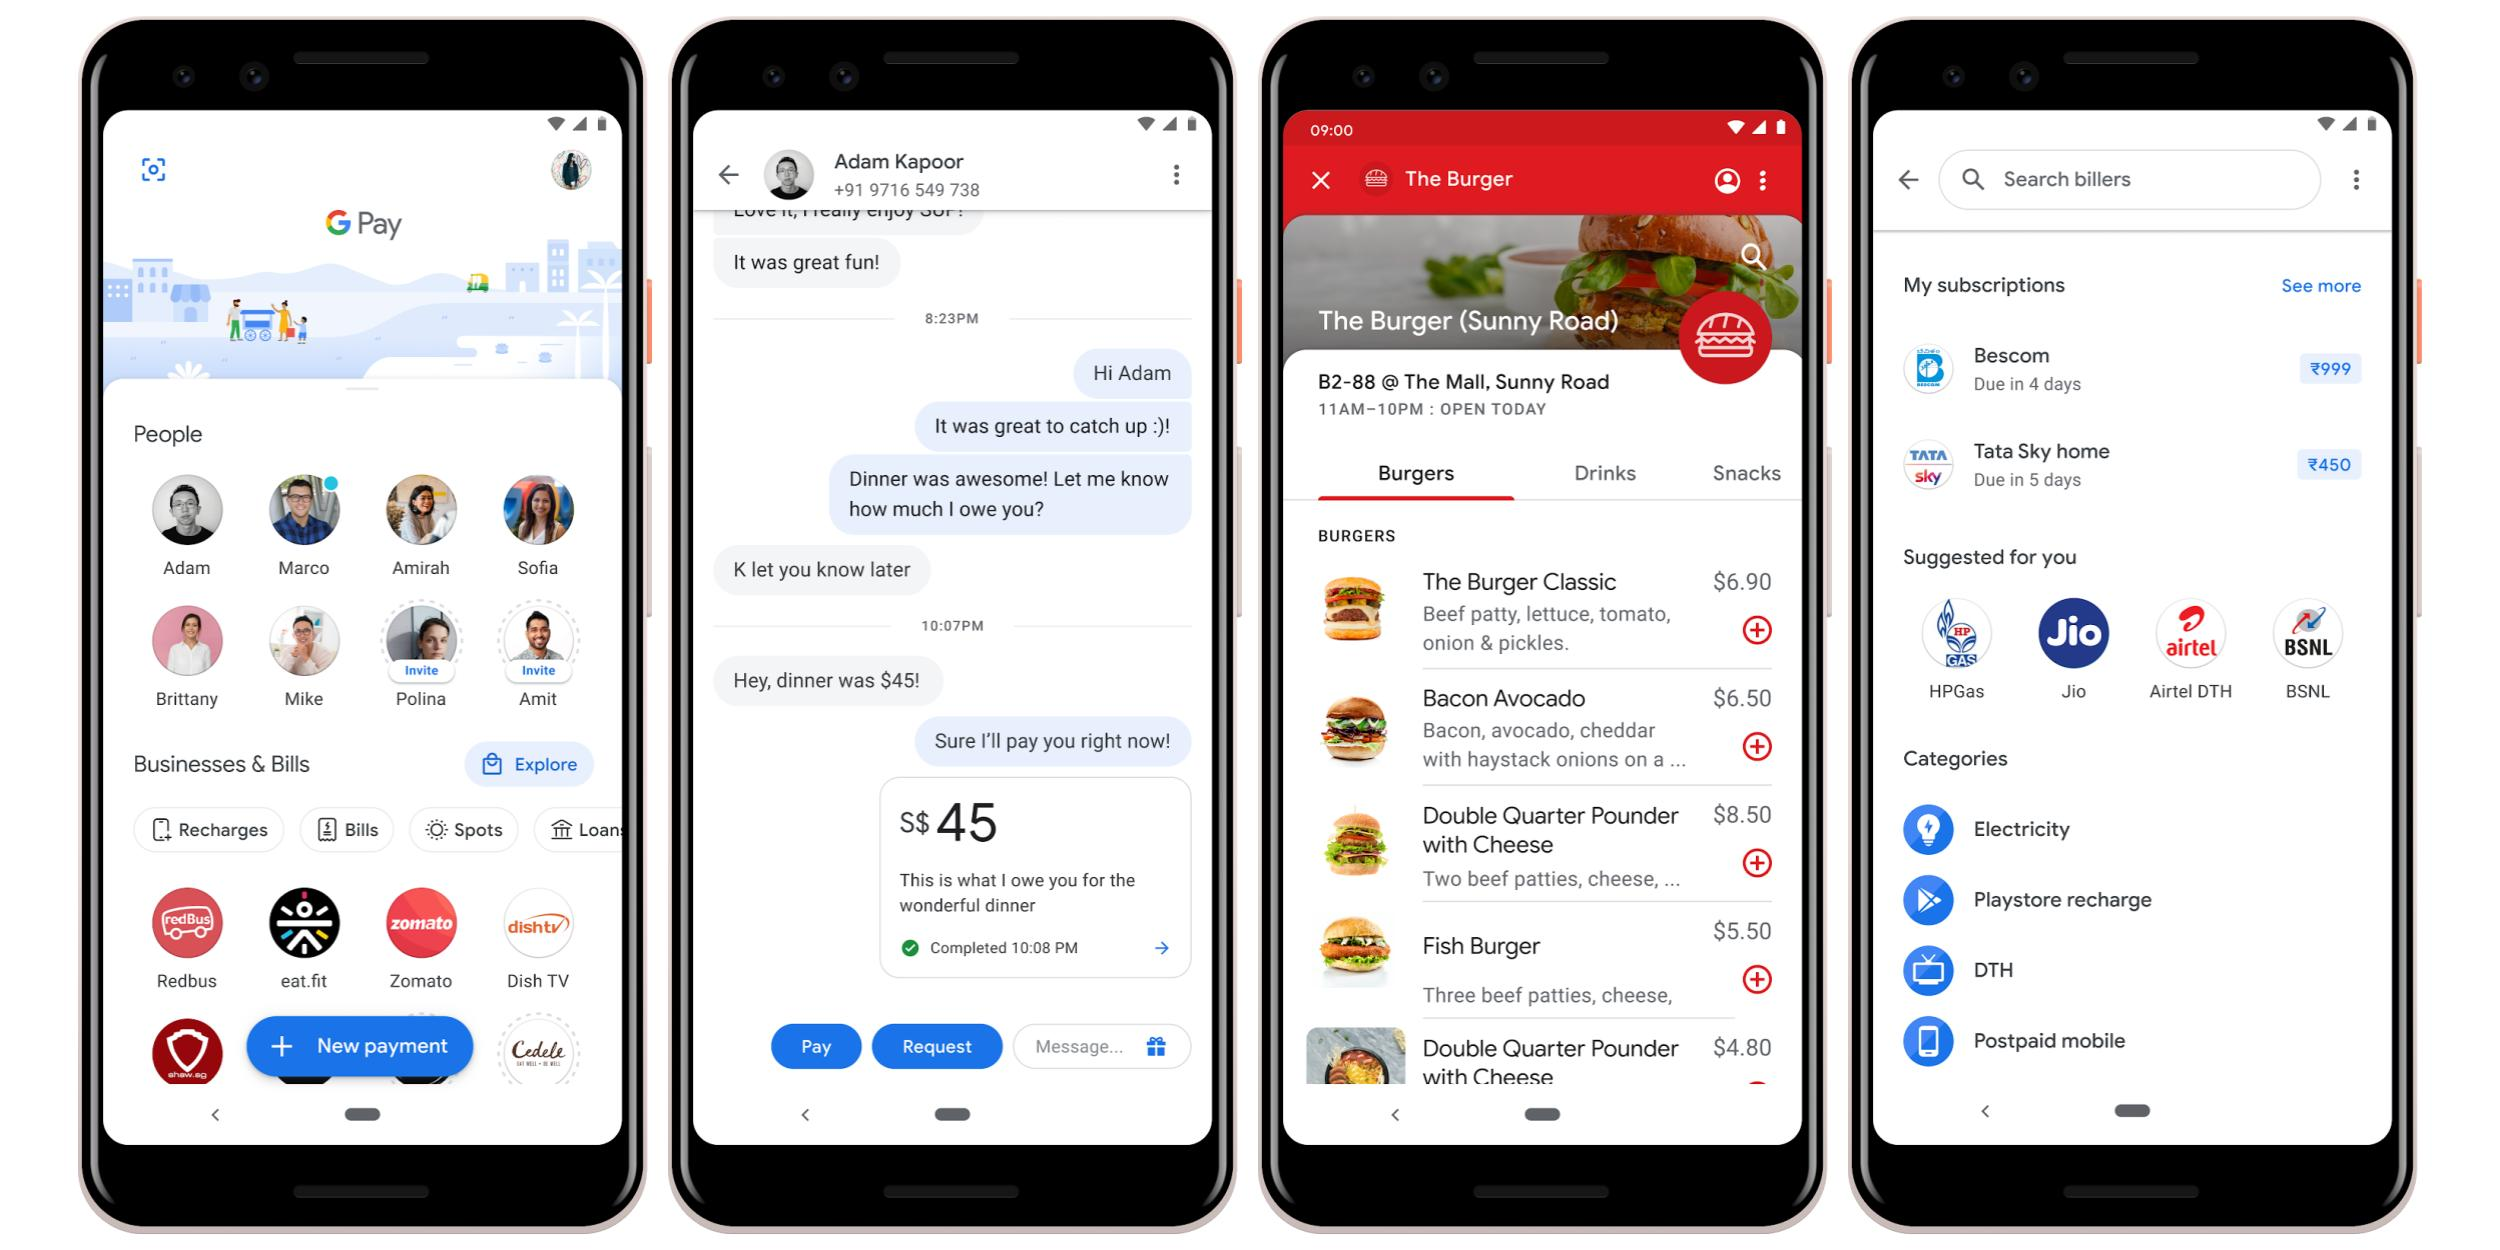 Google Pay (Tez) gets Flutter rewrite that will serve as global foundation - 9to5Google